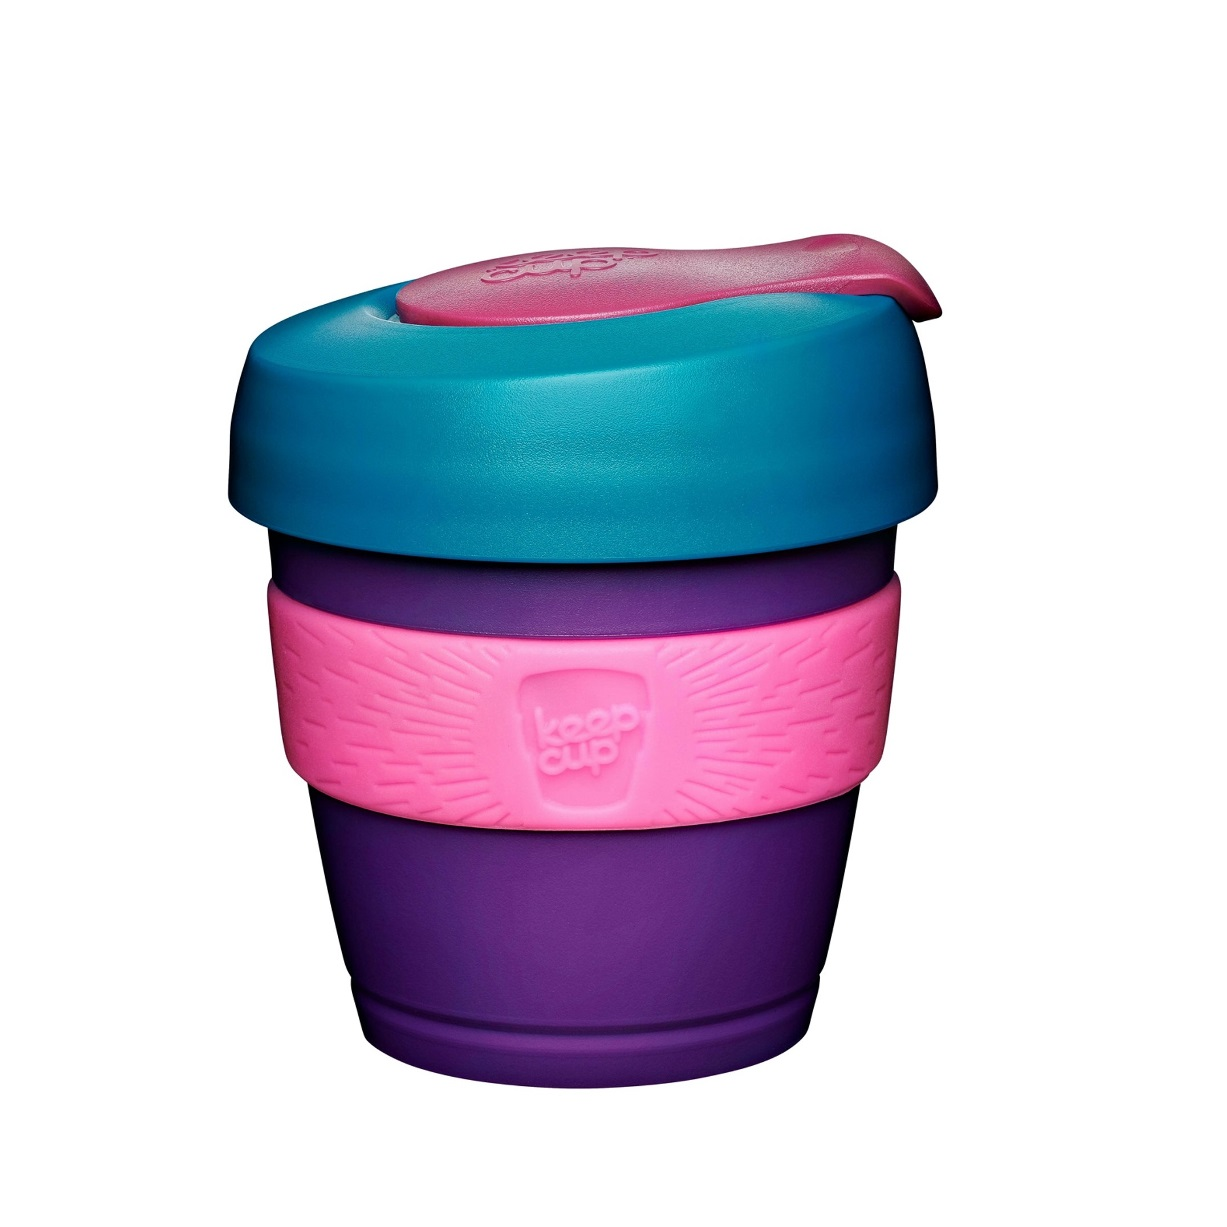 KeepCup Original 4oz Harmony